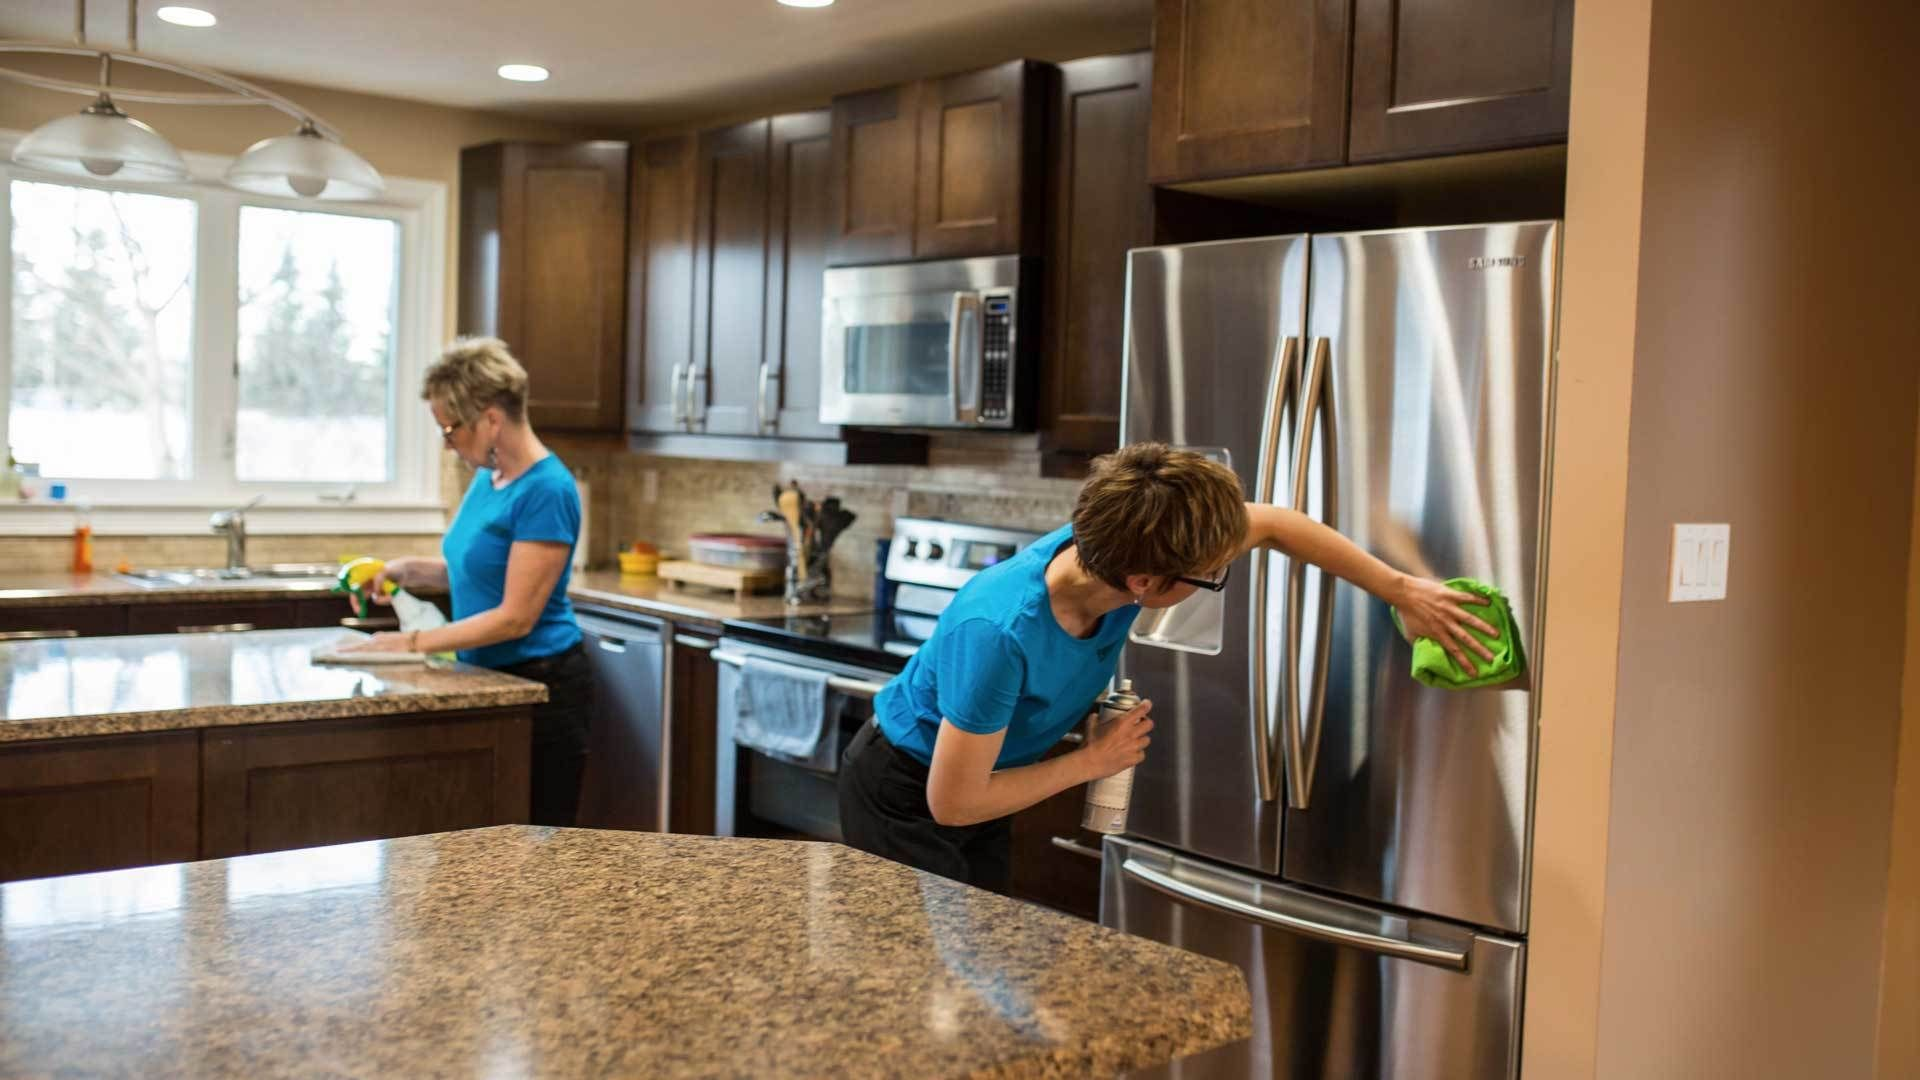 6 Things to Consider Before Hiring Residential Cleaning Services | Residential  cleaning, House cleaning services, Residential cleaning services